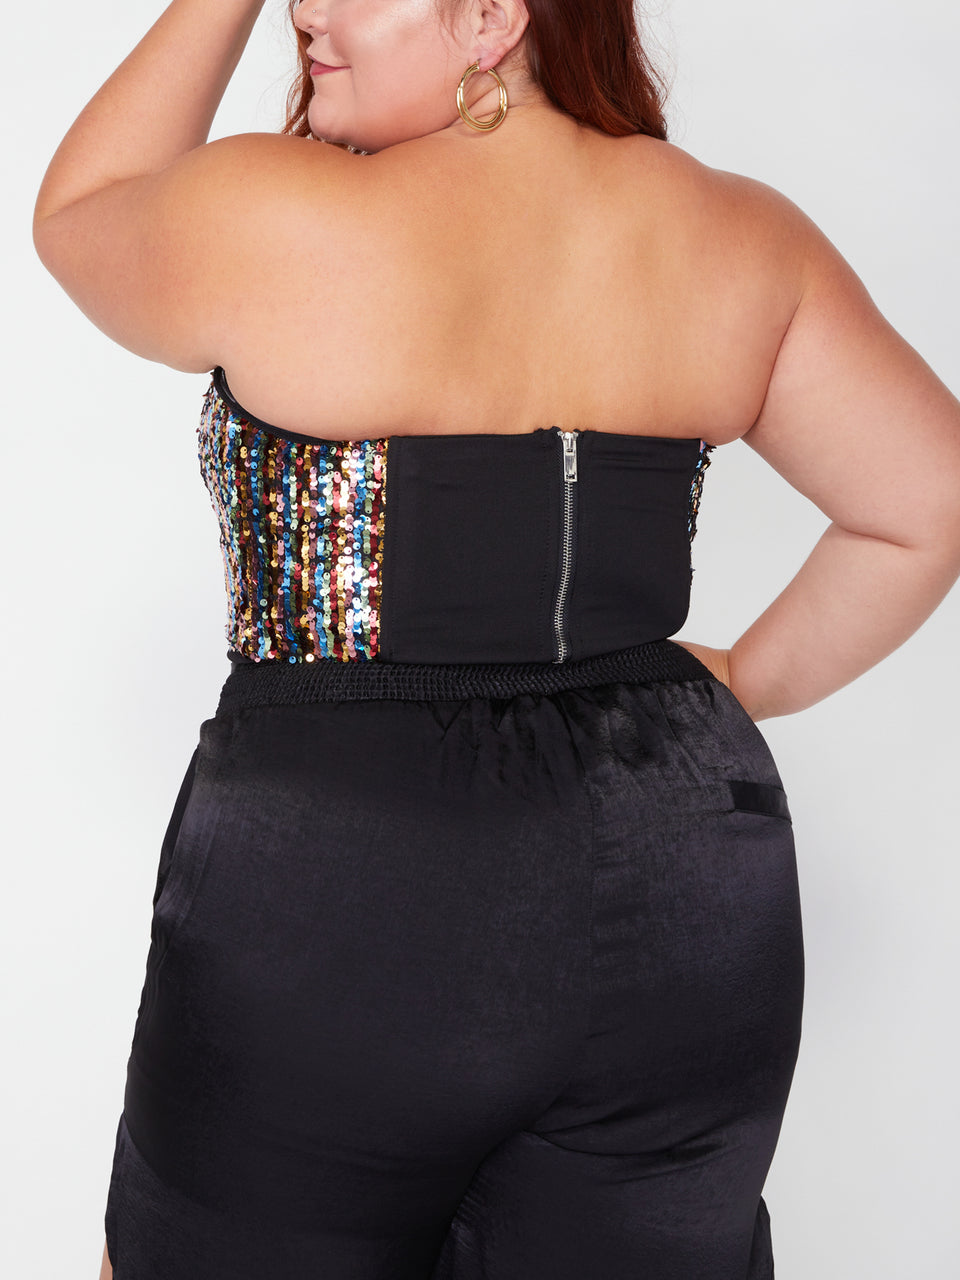 SONCY_Don't Forget Your Sparkle Bustier Top_Rainbow